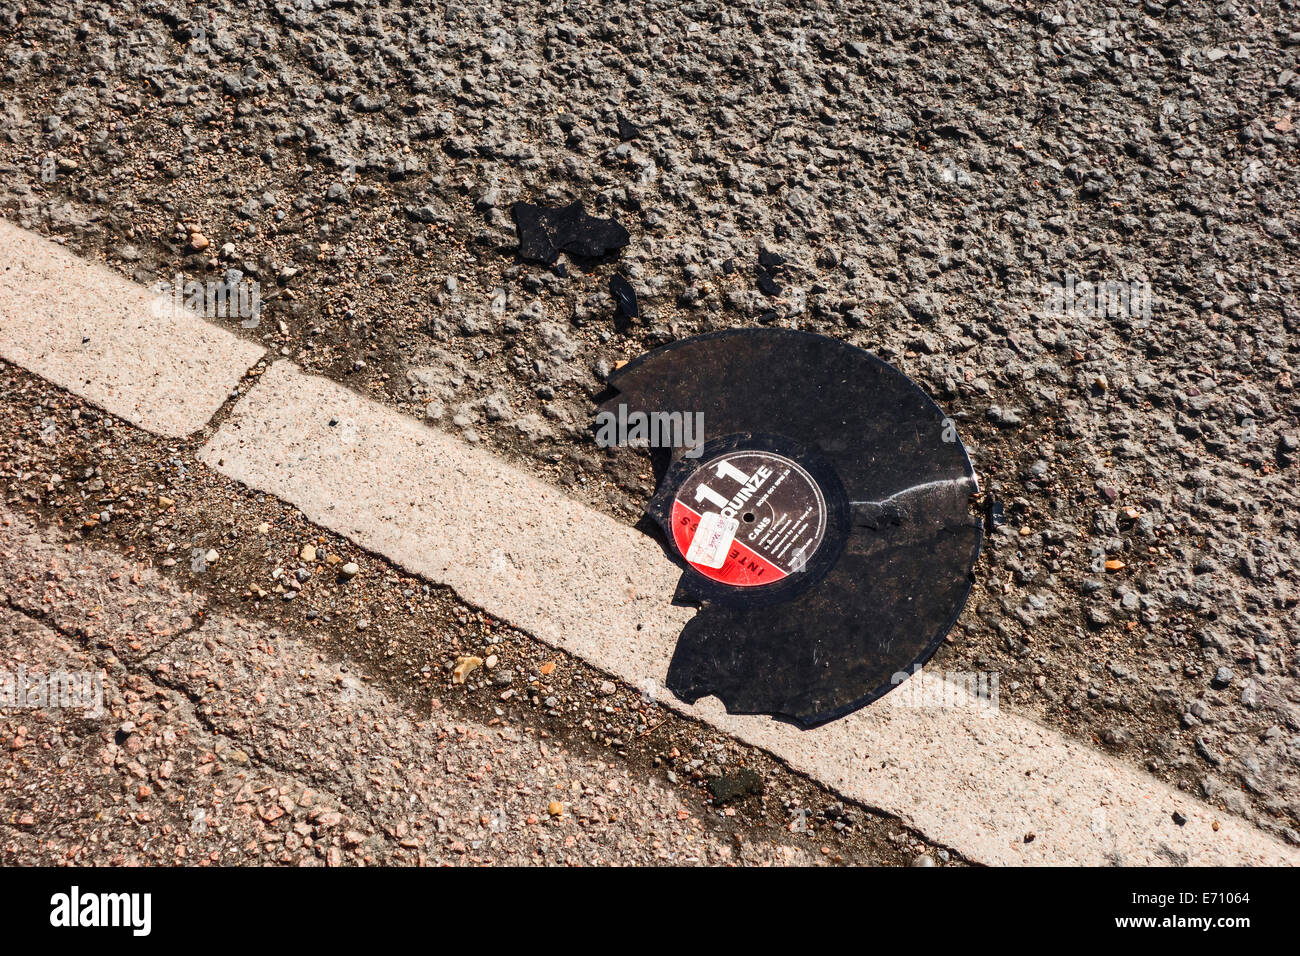 the-end-of-the-vinyl-record-E71064.jpg